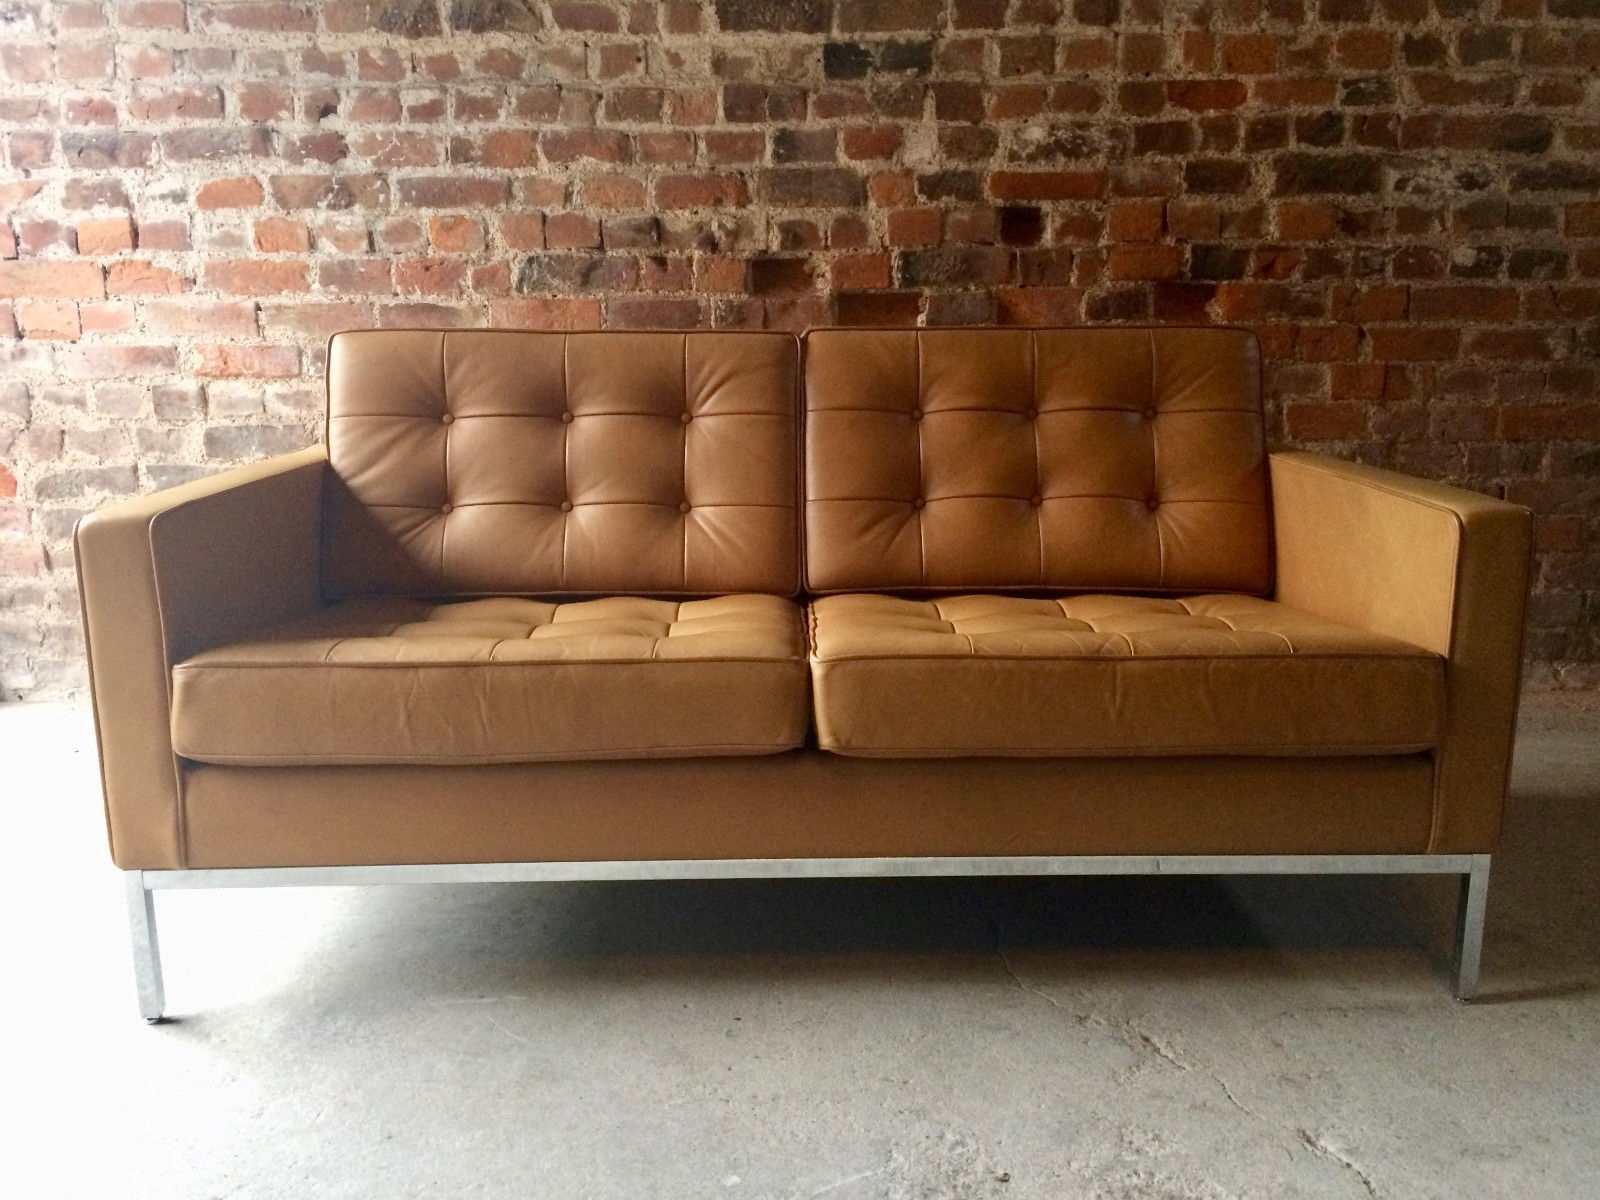 Preferred Vintage 2 Seater Leather Sofaflorence Knoll For Knoll For Sale Intended For Florence Leather Sofas (View 19 of 20)